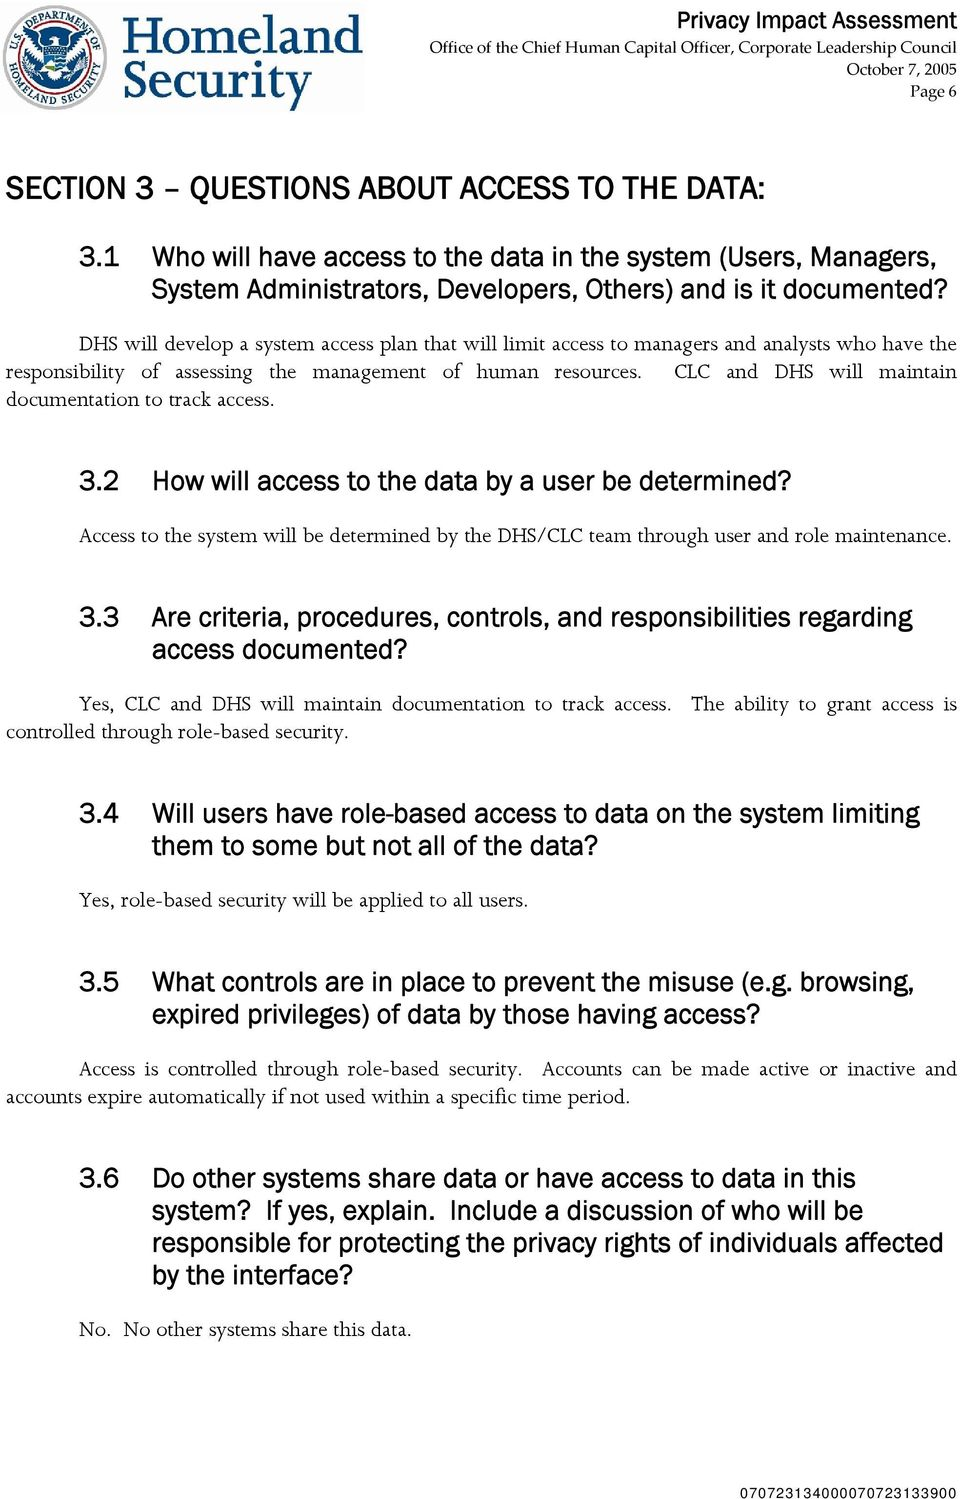 CLC and DHS will maintain documentation to track access. 3.2 How will access to the data by a user be determined?